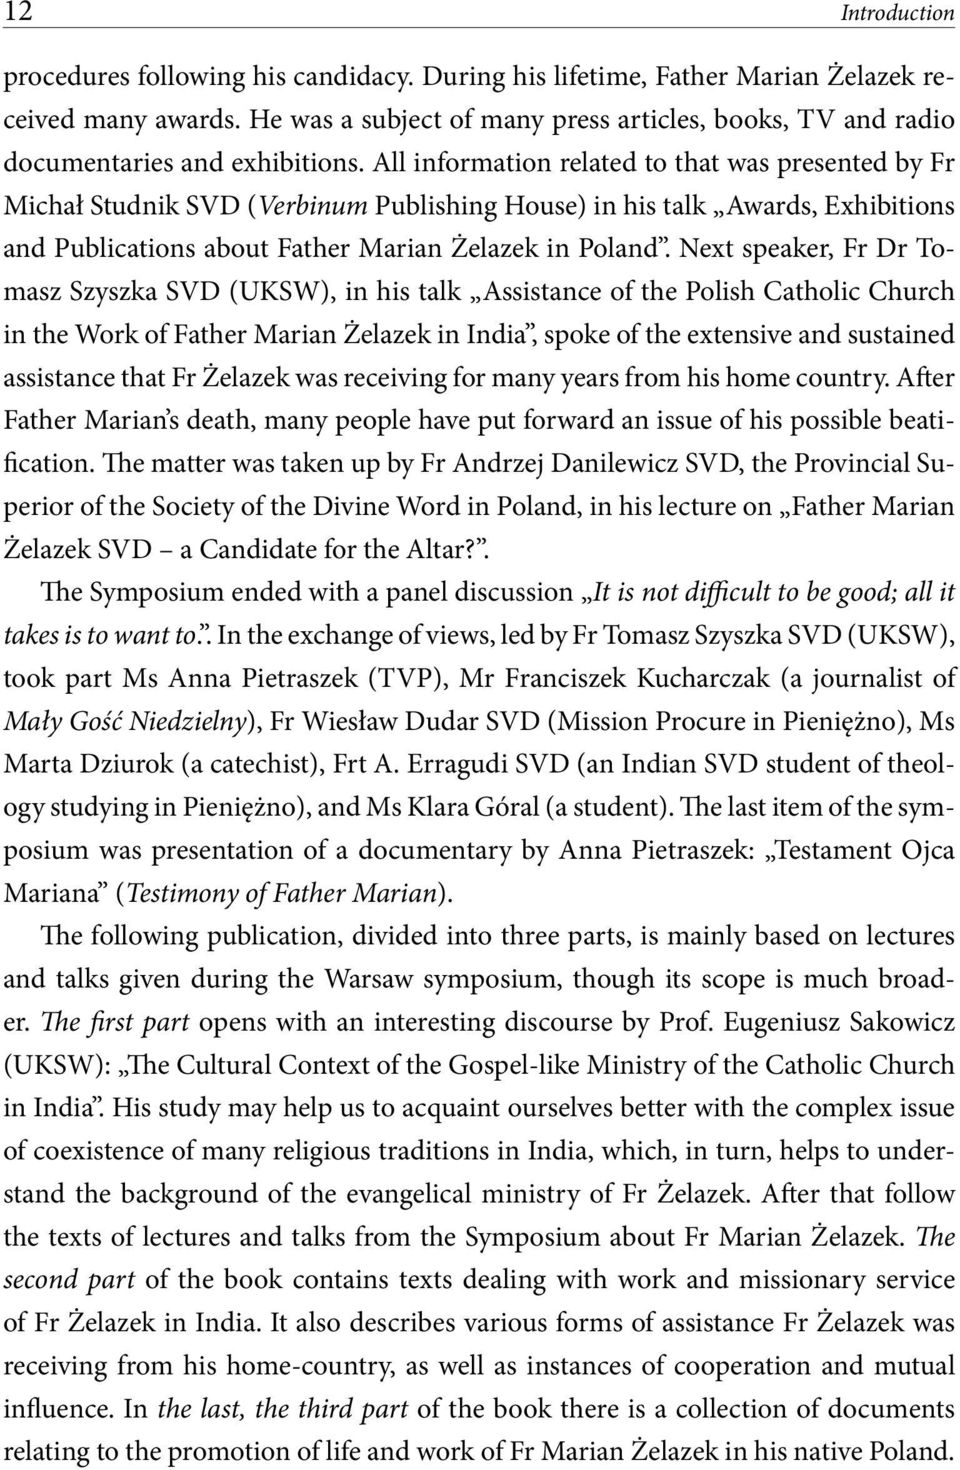 All information related to that was presented by Fr Michał Studnik SVD (Verbinum Publishing House) in his talk Awards, Exhibitions and Publications about Father Marian Żelazek in Poland.